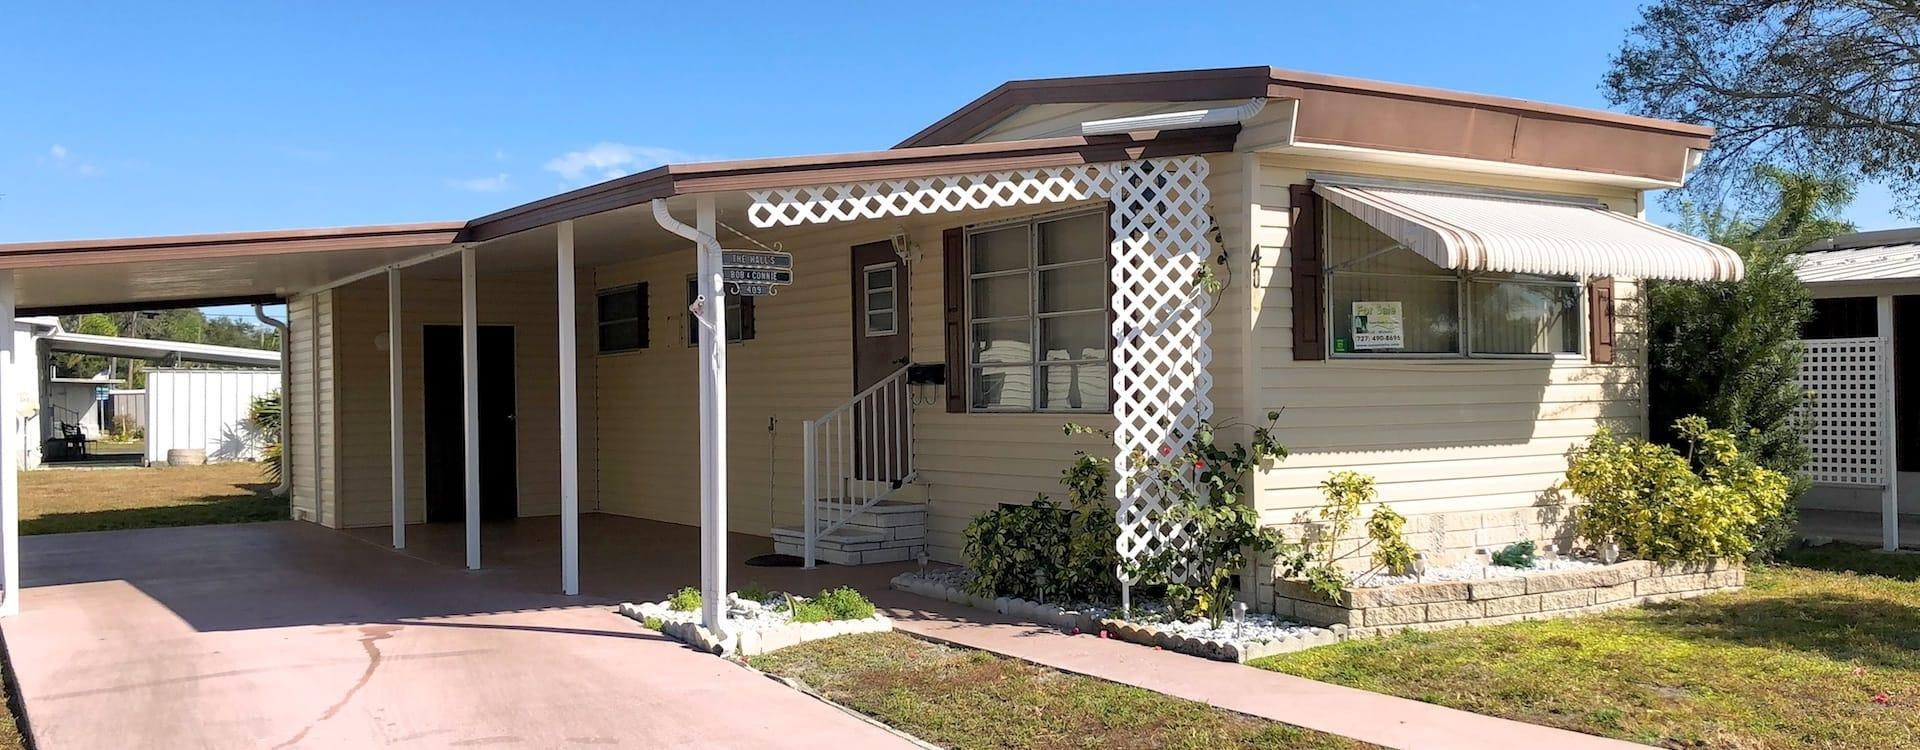 Mobile Home For Sale - Saint Petersburg, FL Isle Of Palms #409